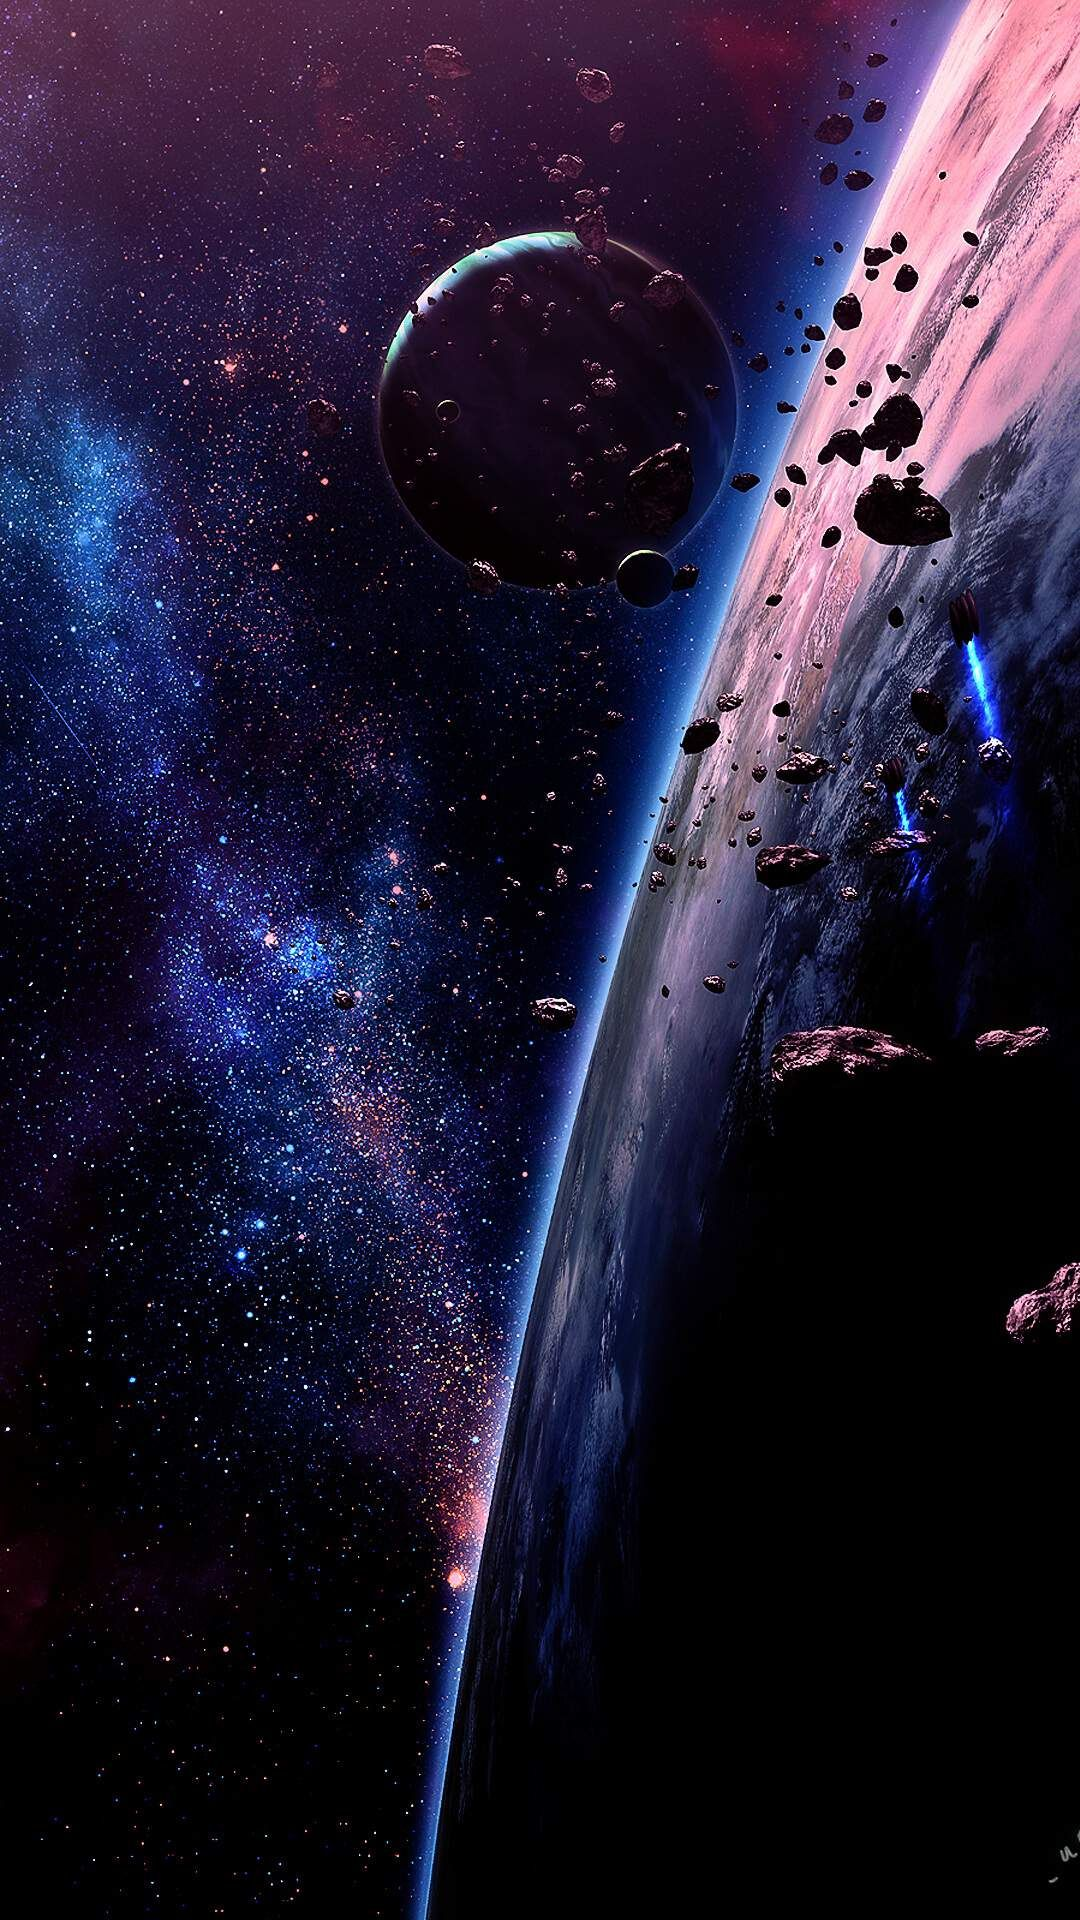 Get Best Space Phone Wallpaper HD This Month by iphoneswallpapers.com